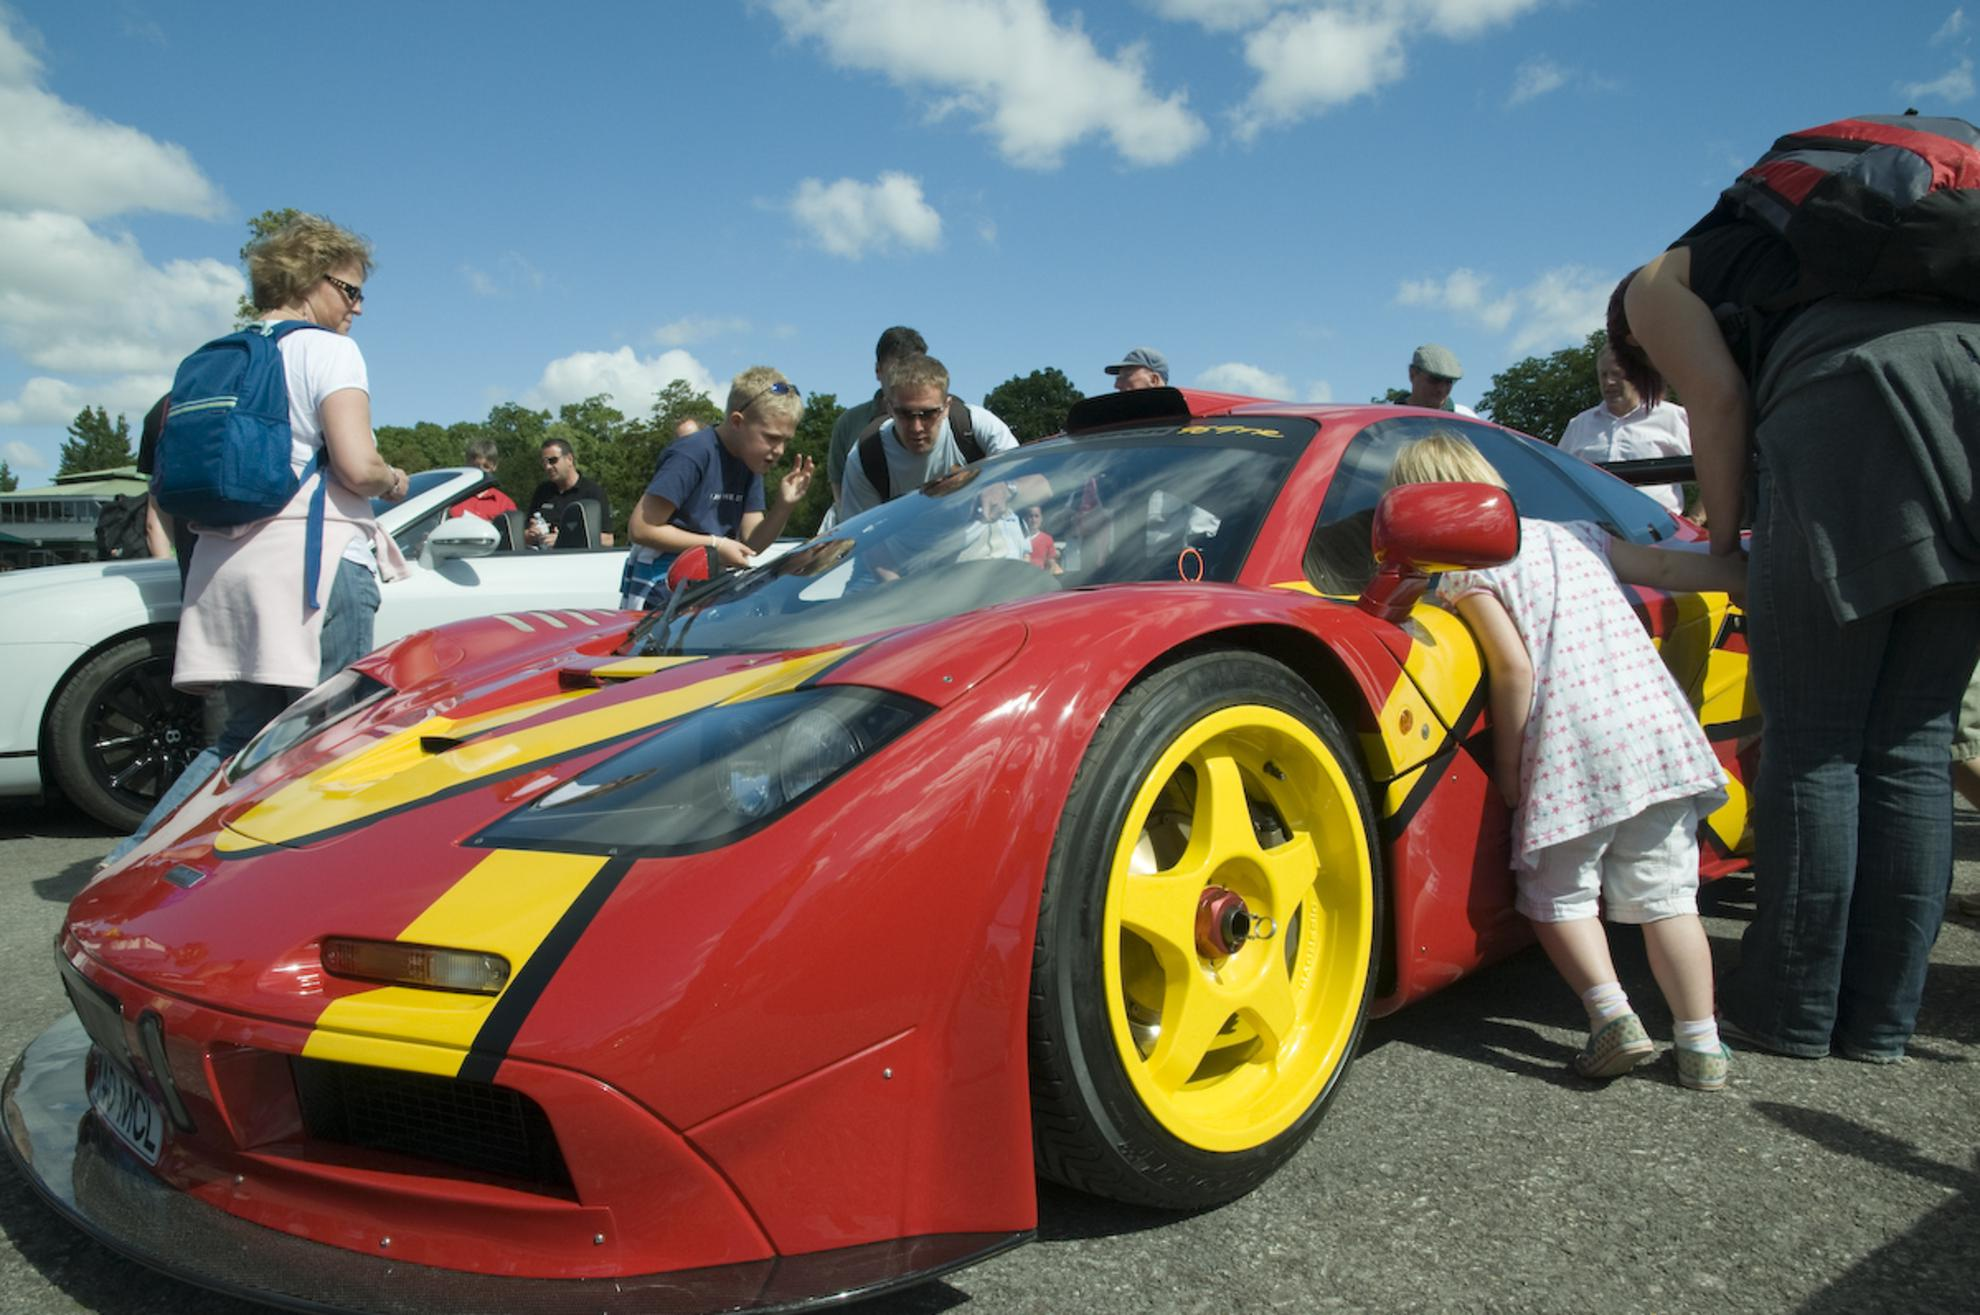 Looking at the supercars